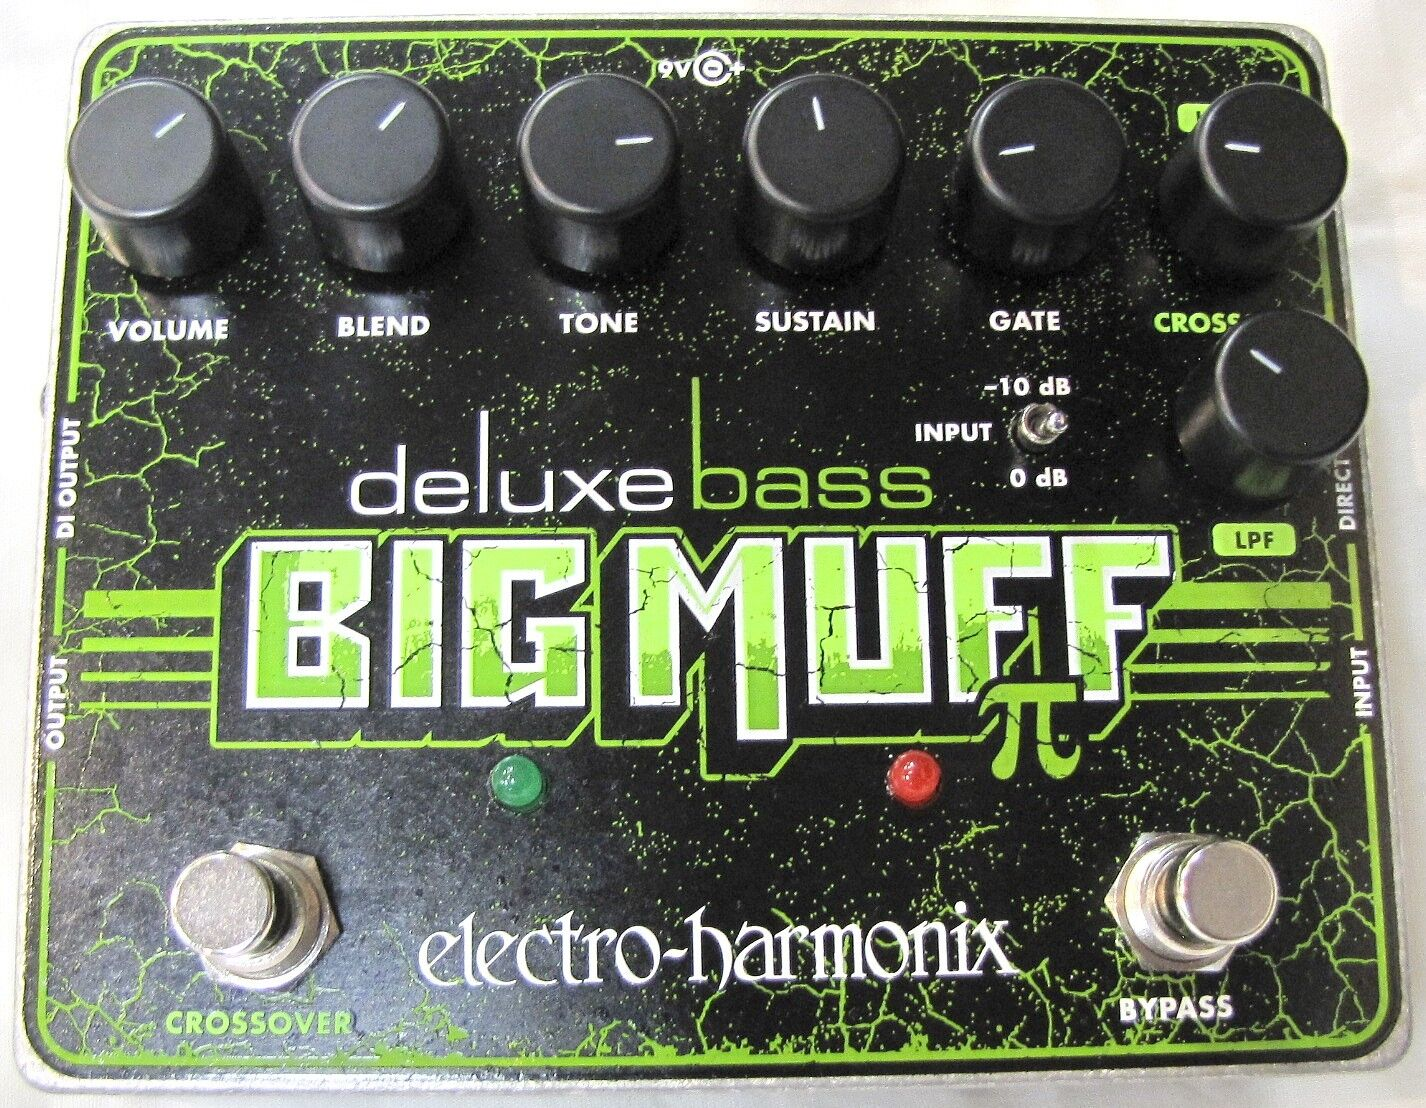 Used Electro Harmonix Ehx Deluxe Bass Big Muff Pi Distortion Guitar Effect Pedal 1 Of 1only 0 Available See More